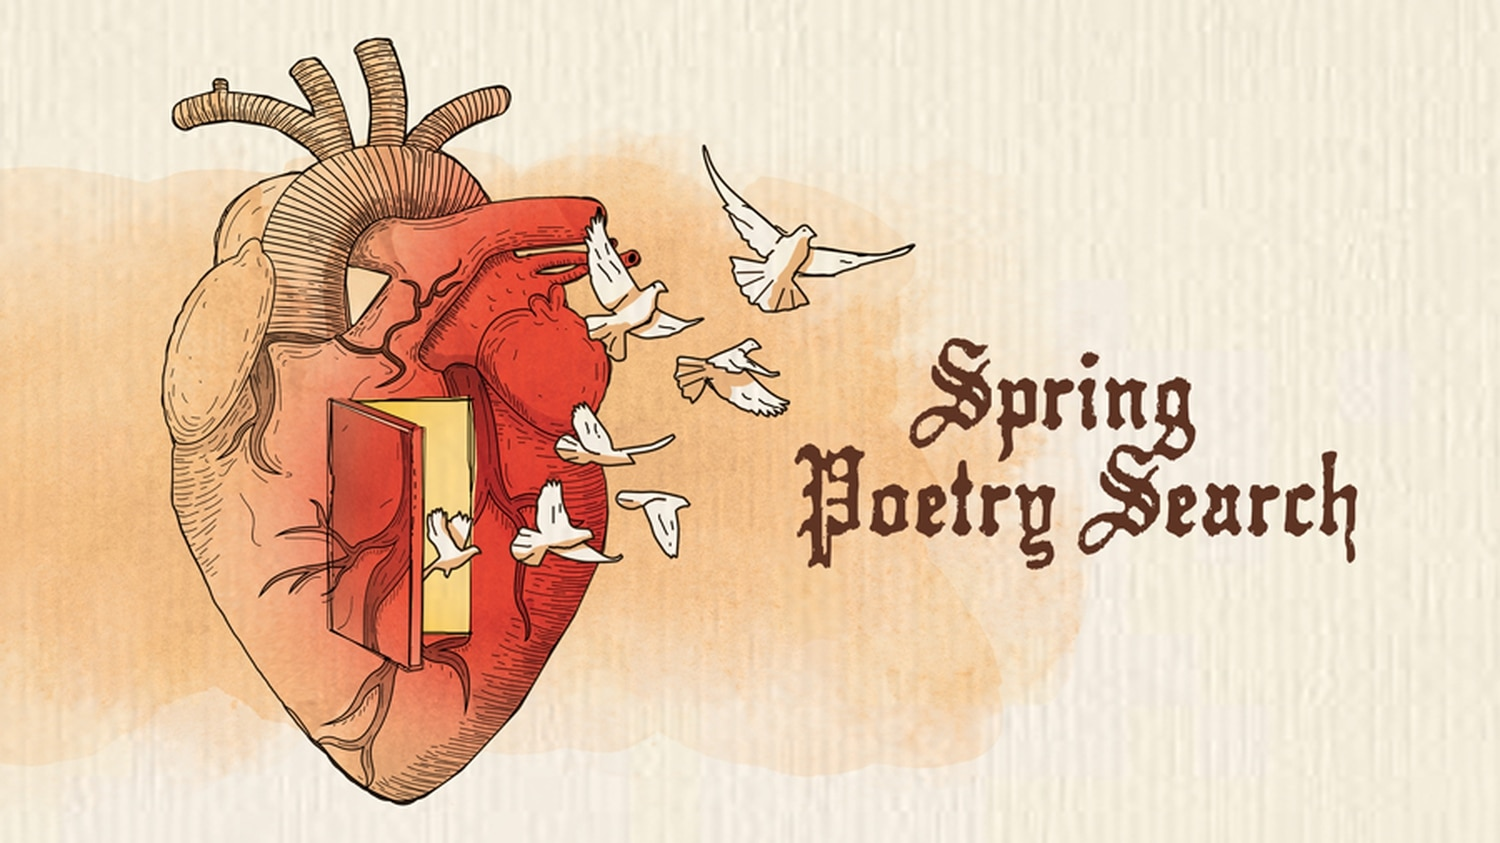 Spring Poetry Search